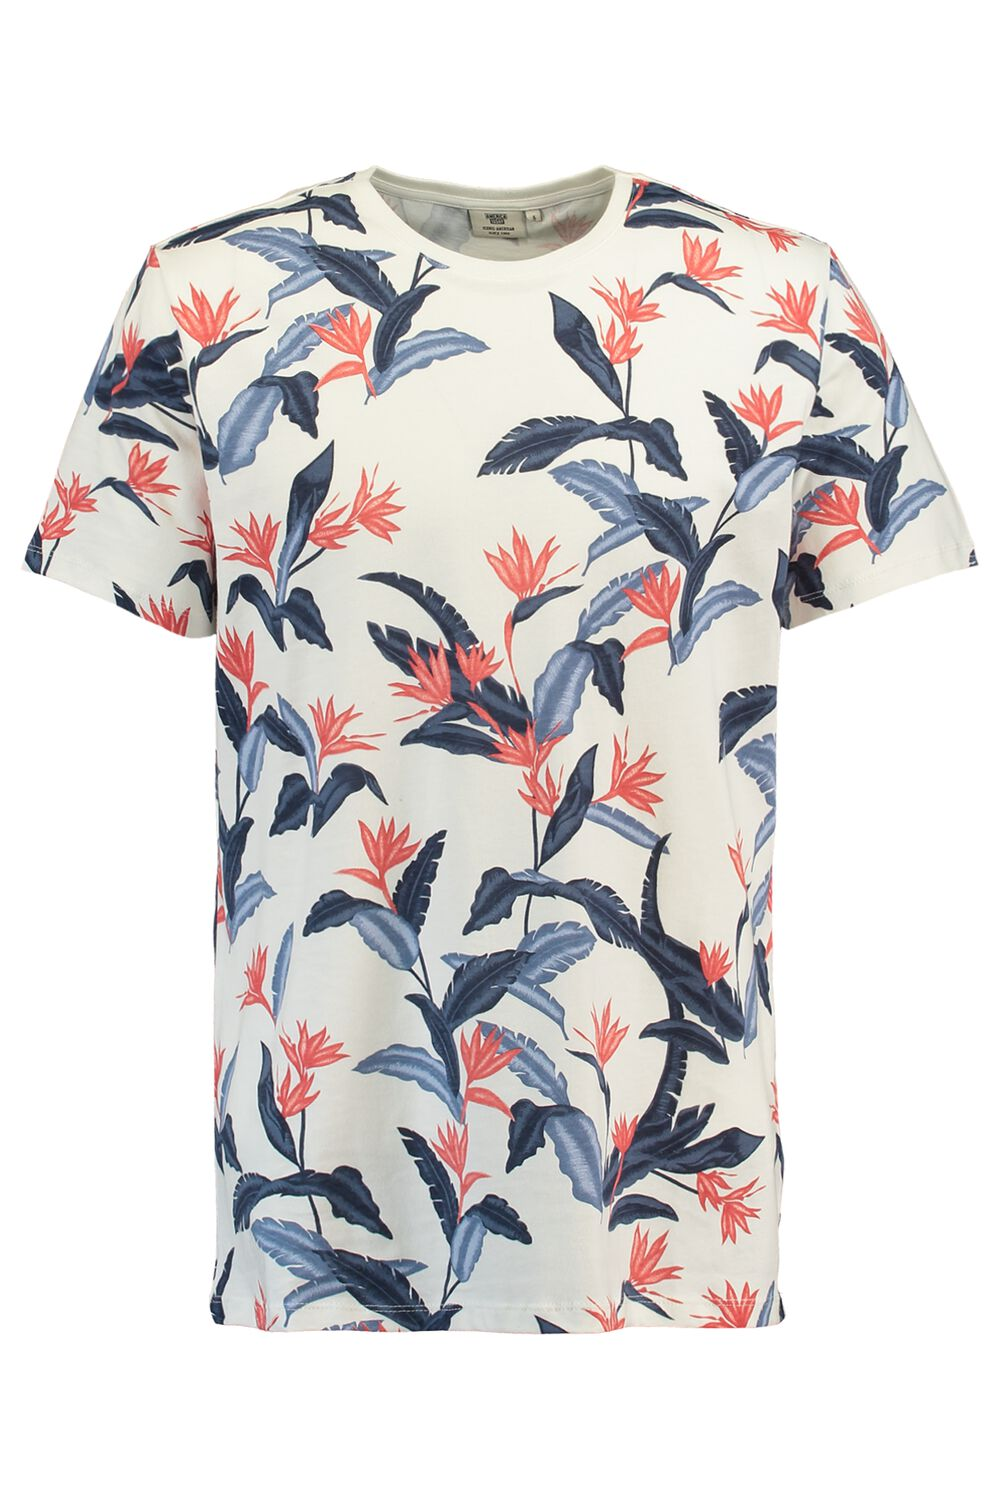 America Today Heren T-shirt Edwald Flower Wit